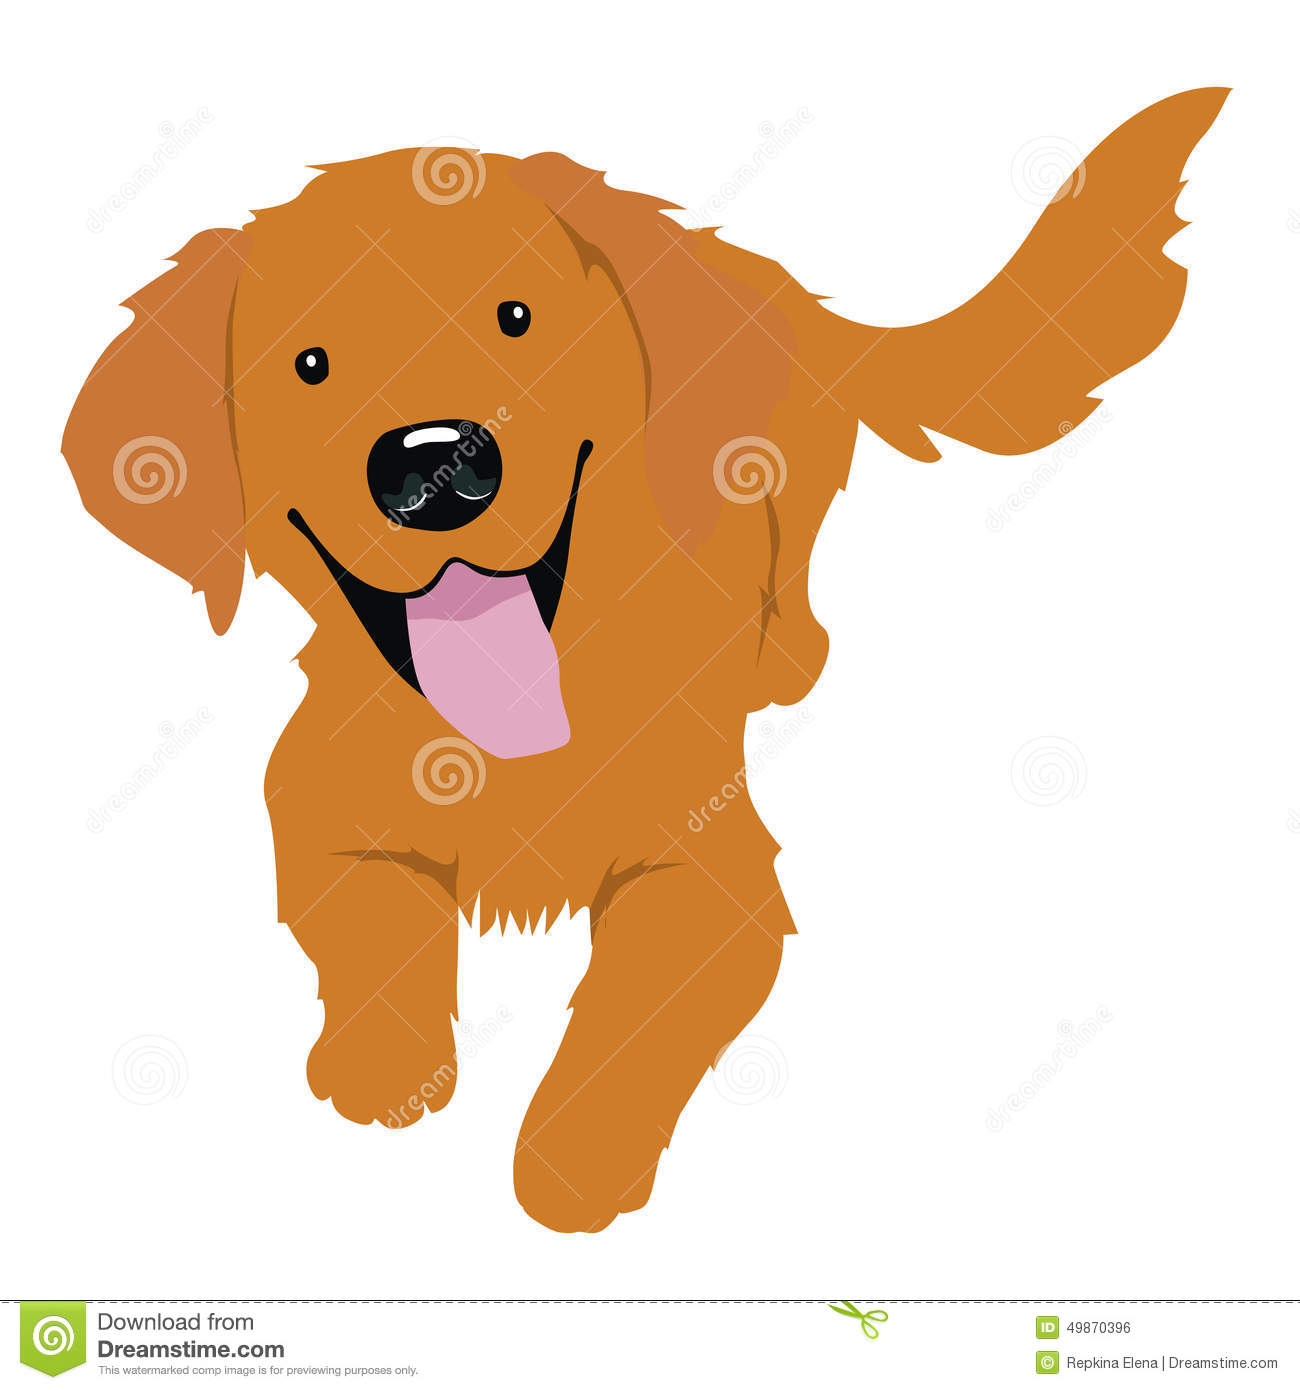 Golden Retriever clipart #7, Download drawings